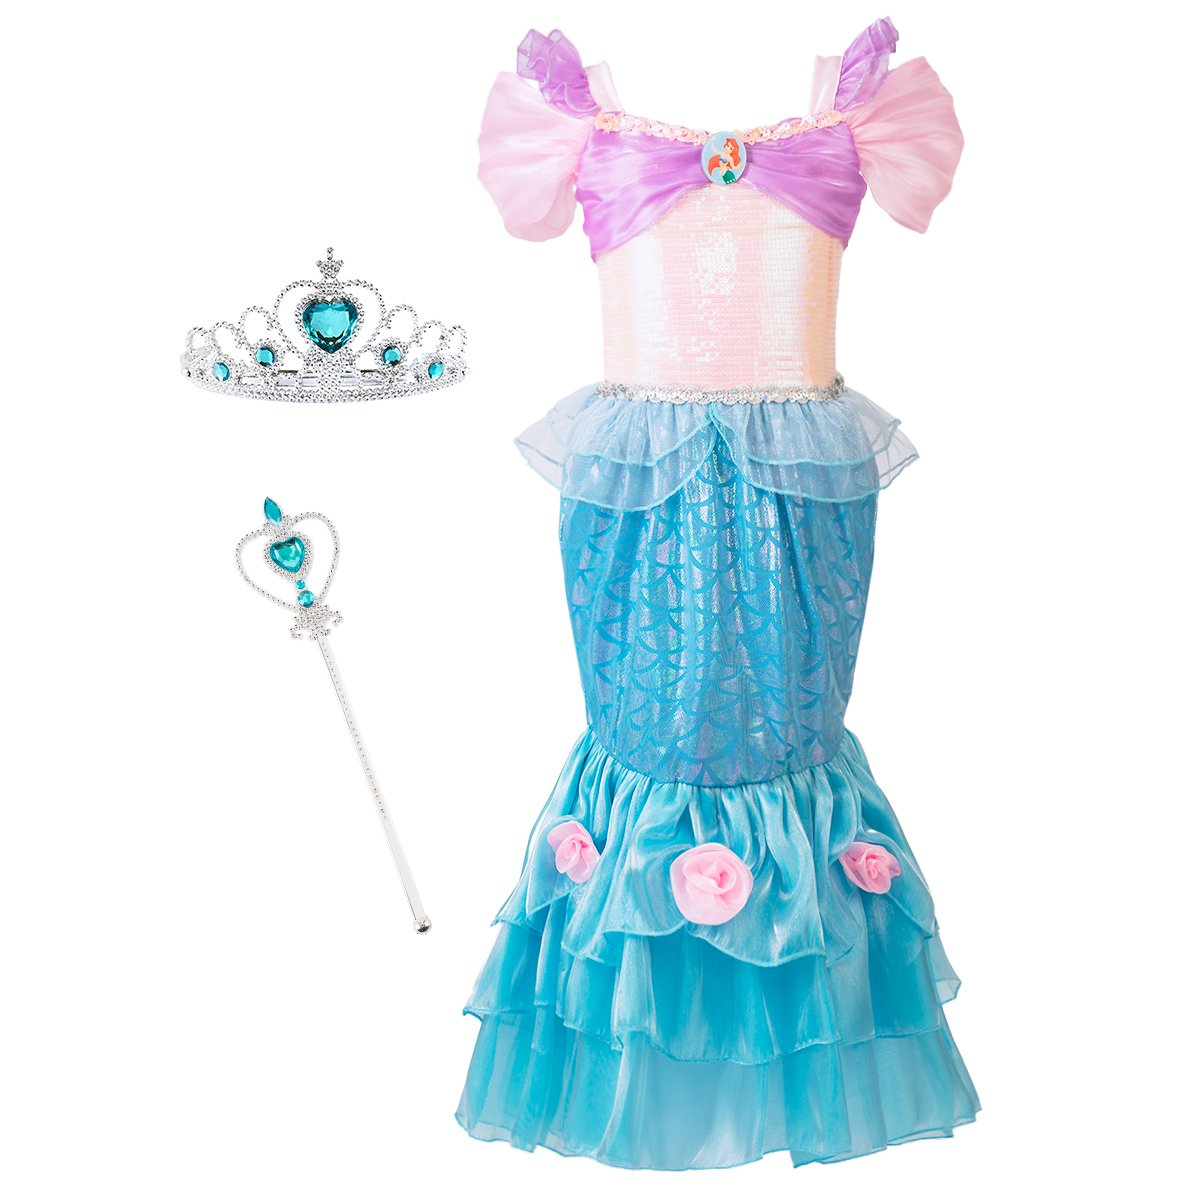 2abf2571017c61 New Style, More Gorgeous and Comfortable, With Tiara and Magic Wand, Best  gift idea for little girl\'s birthday party, halloween, christmas and dress  up ...